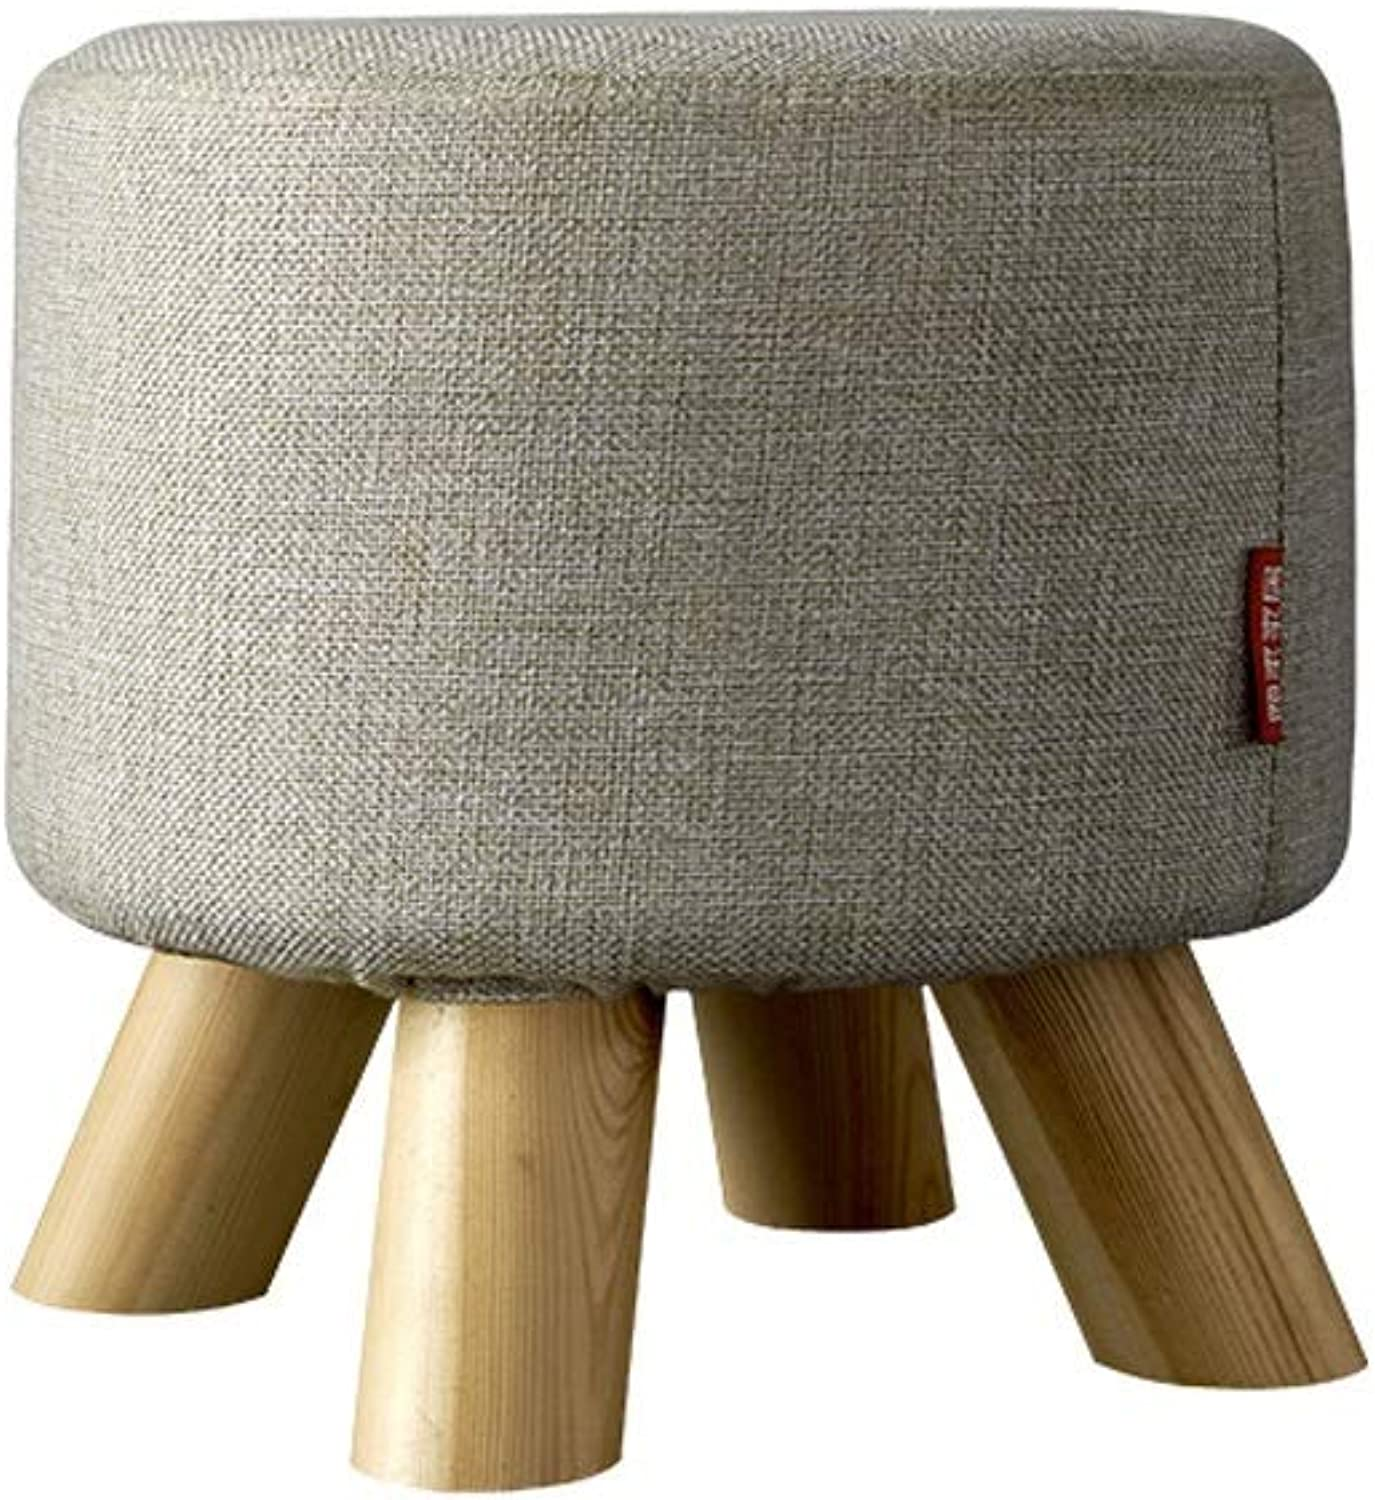 LifeX Houndstooth Style Entrance Change shoes Bench Living Room Round Sofa Stool Wooden Fabric Stool Cotton and Linen Seat Kitchen Low Chair Makeup Stool (Dia29H29CM) (color   Style B)